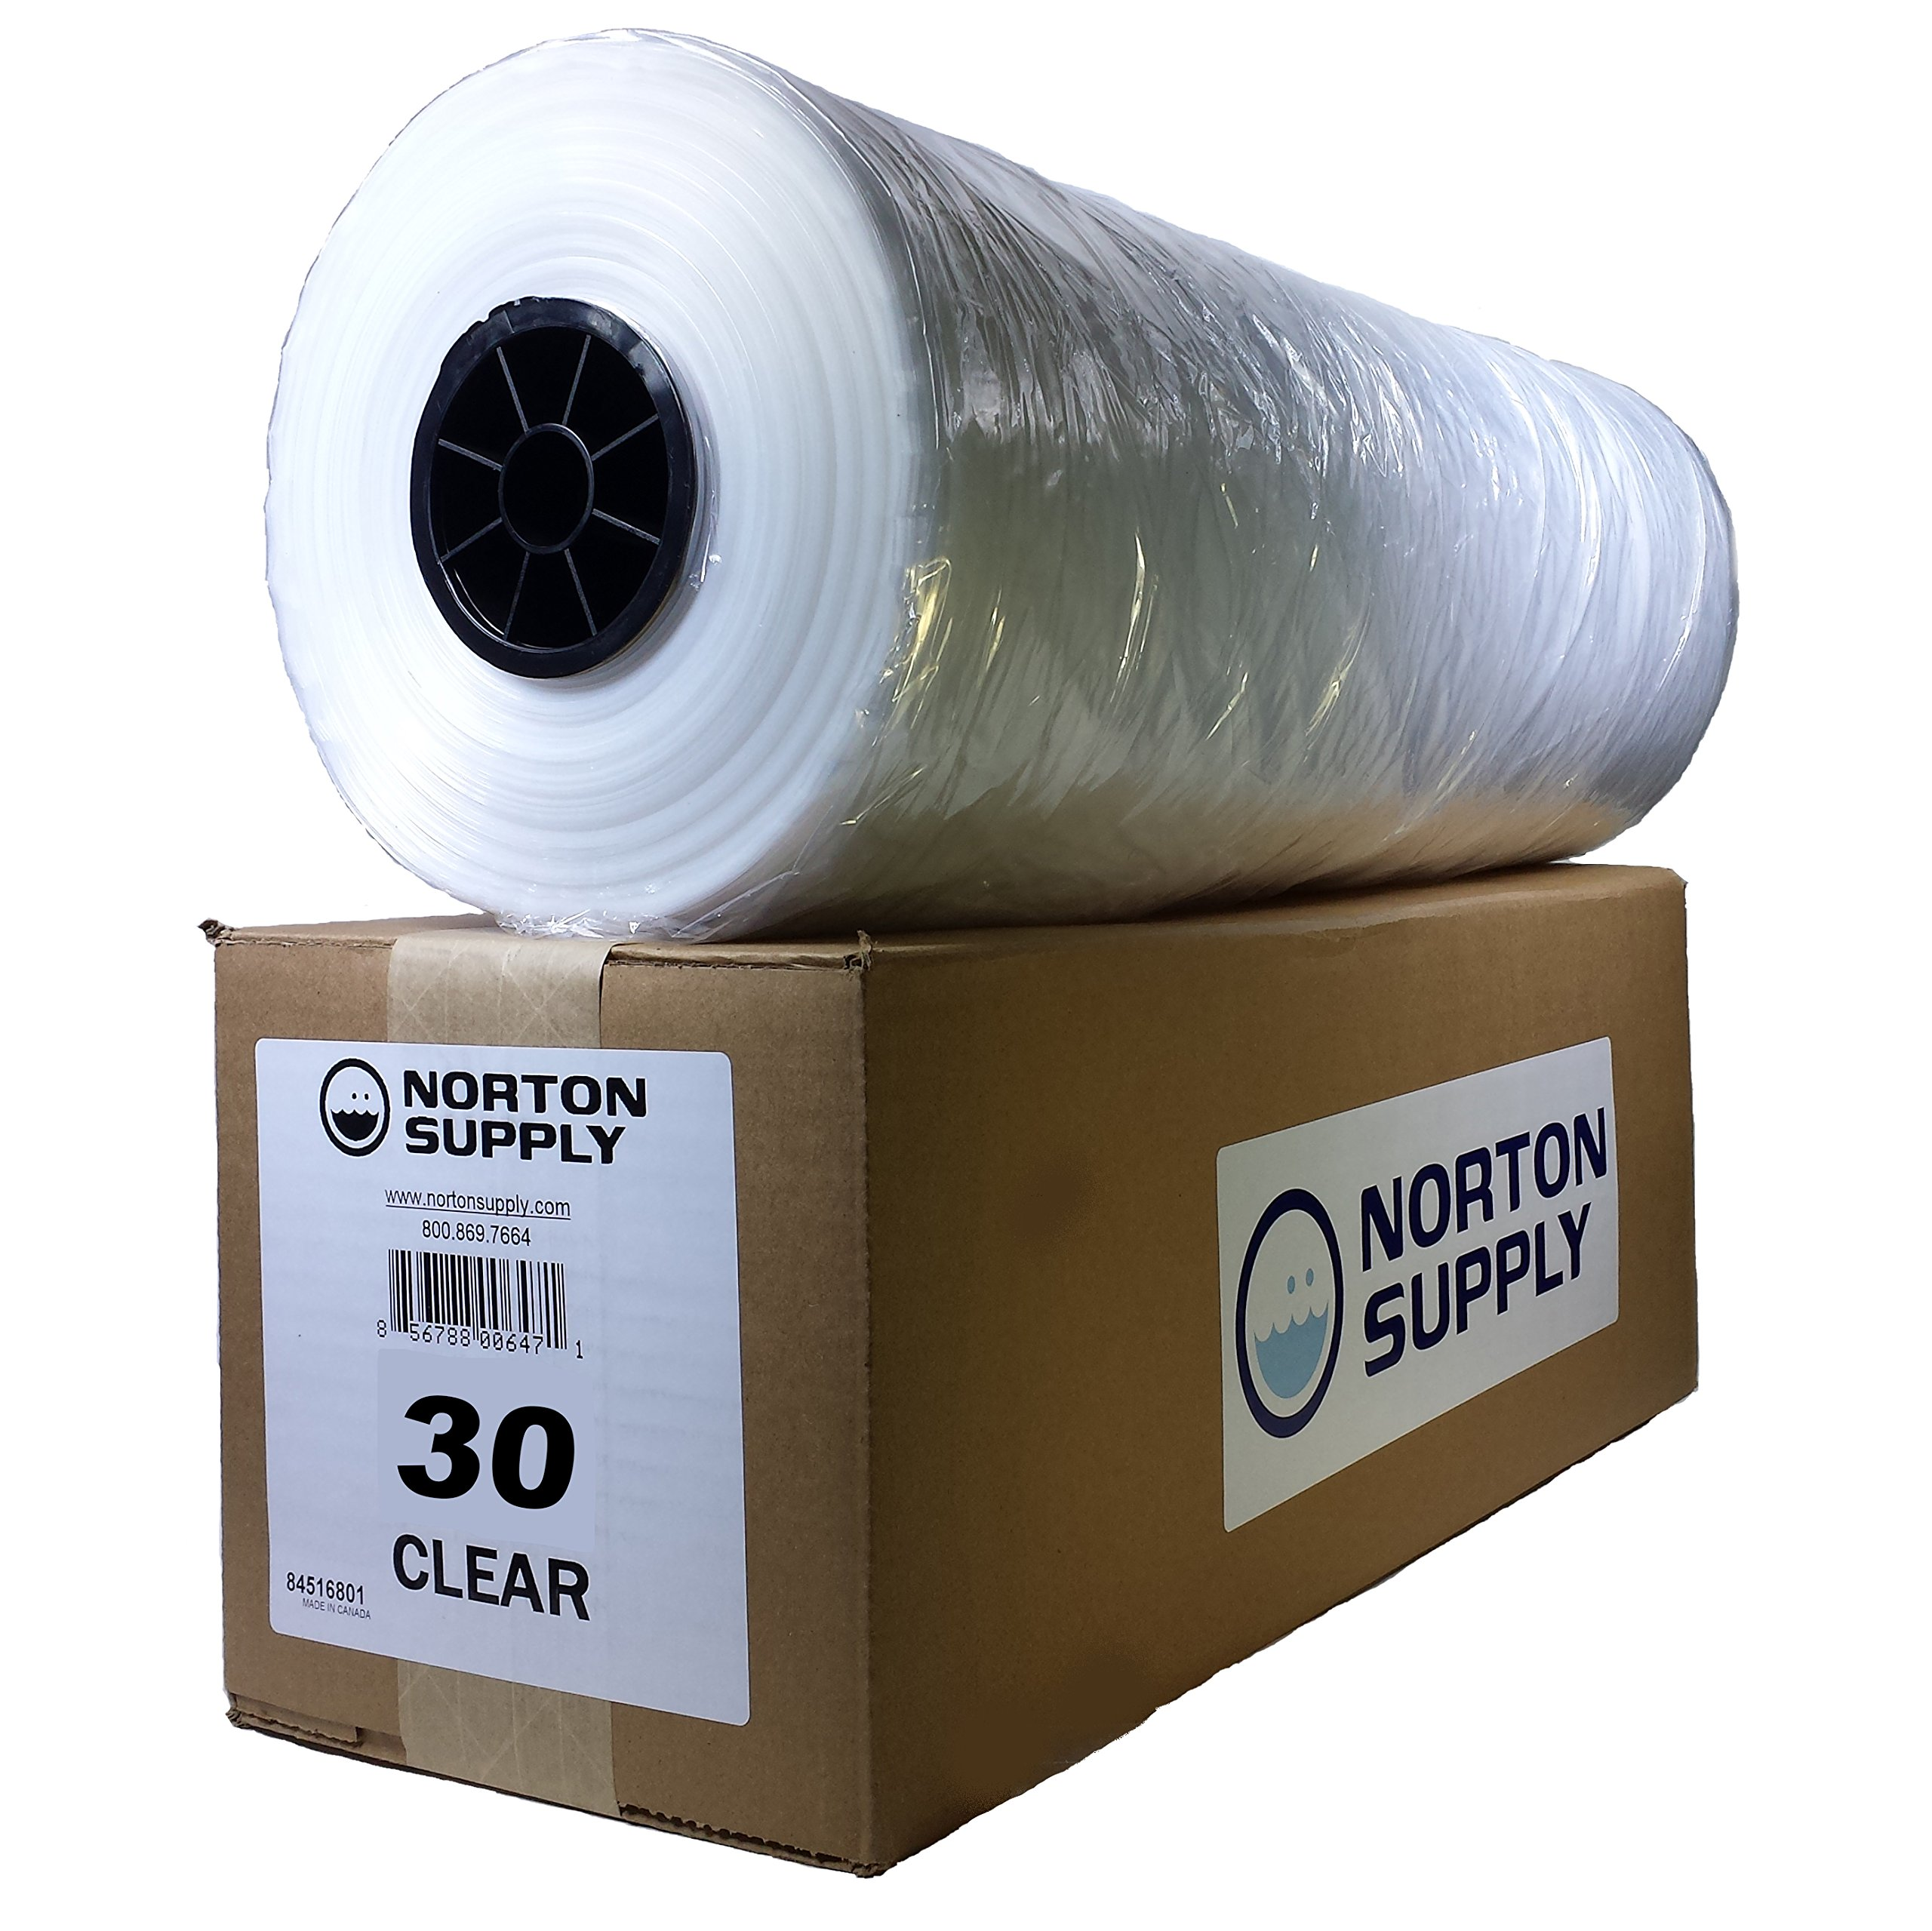 Norton Supply Dry Cleaning Poly Bags - 30'', 100 Gauge